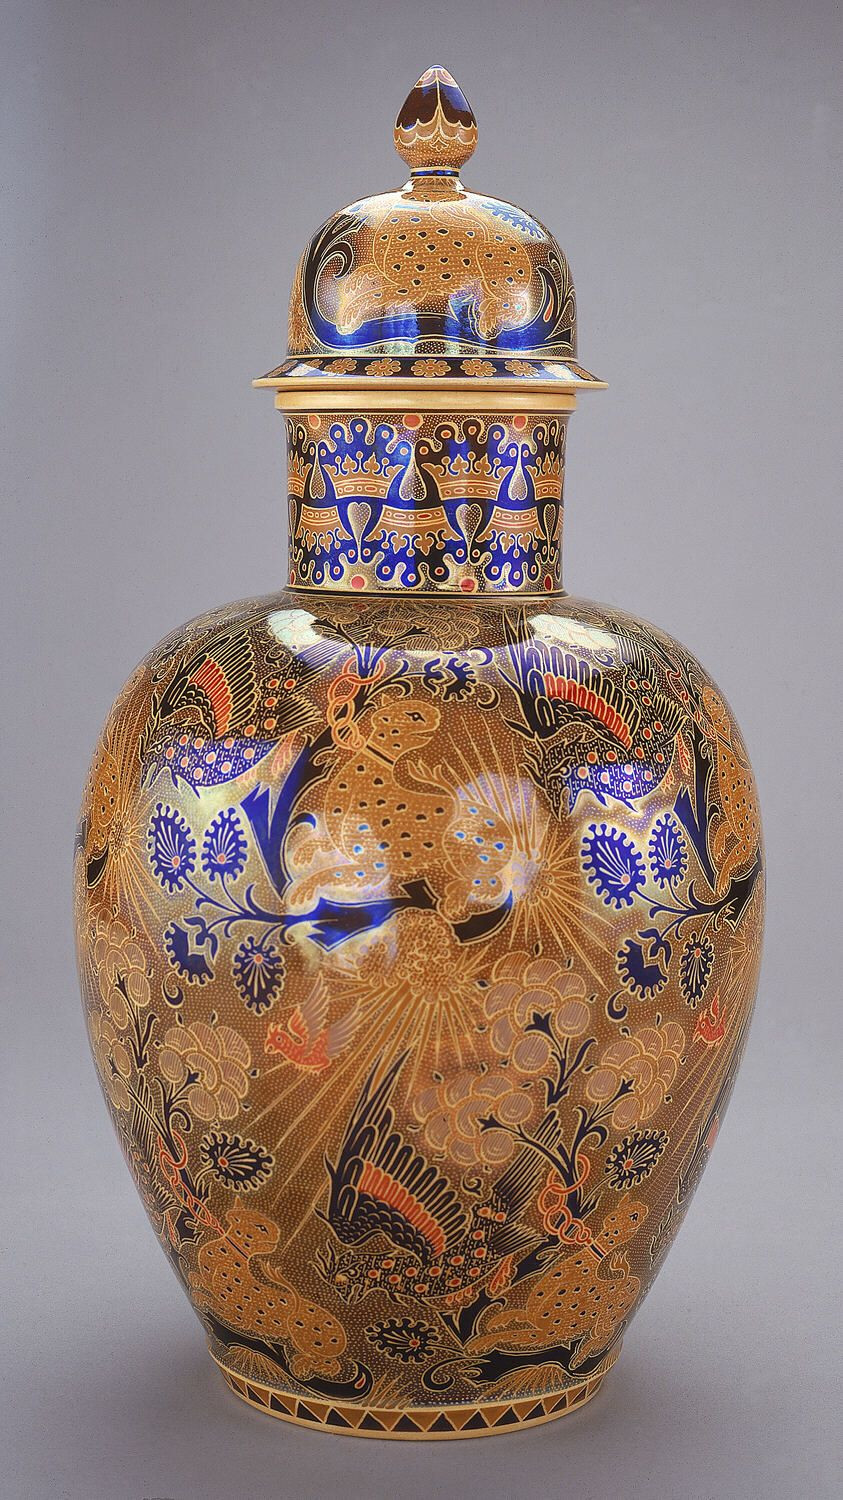 Most Expensive Vase Ever sold Of Zsolnay Lidded Urn Vase Zsolnay Vases and Jardinia¨res Pinterest Inside Zsolnay Lidded Urn Vase